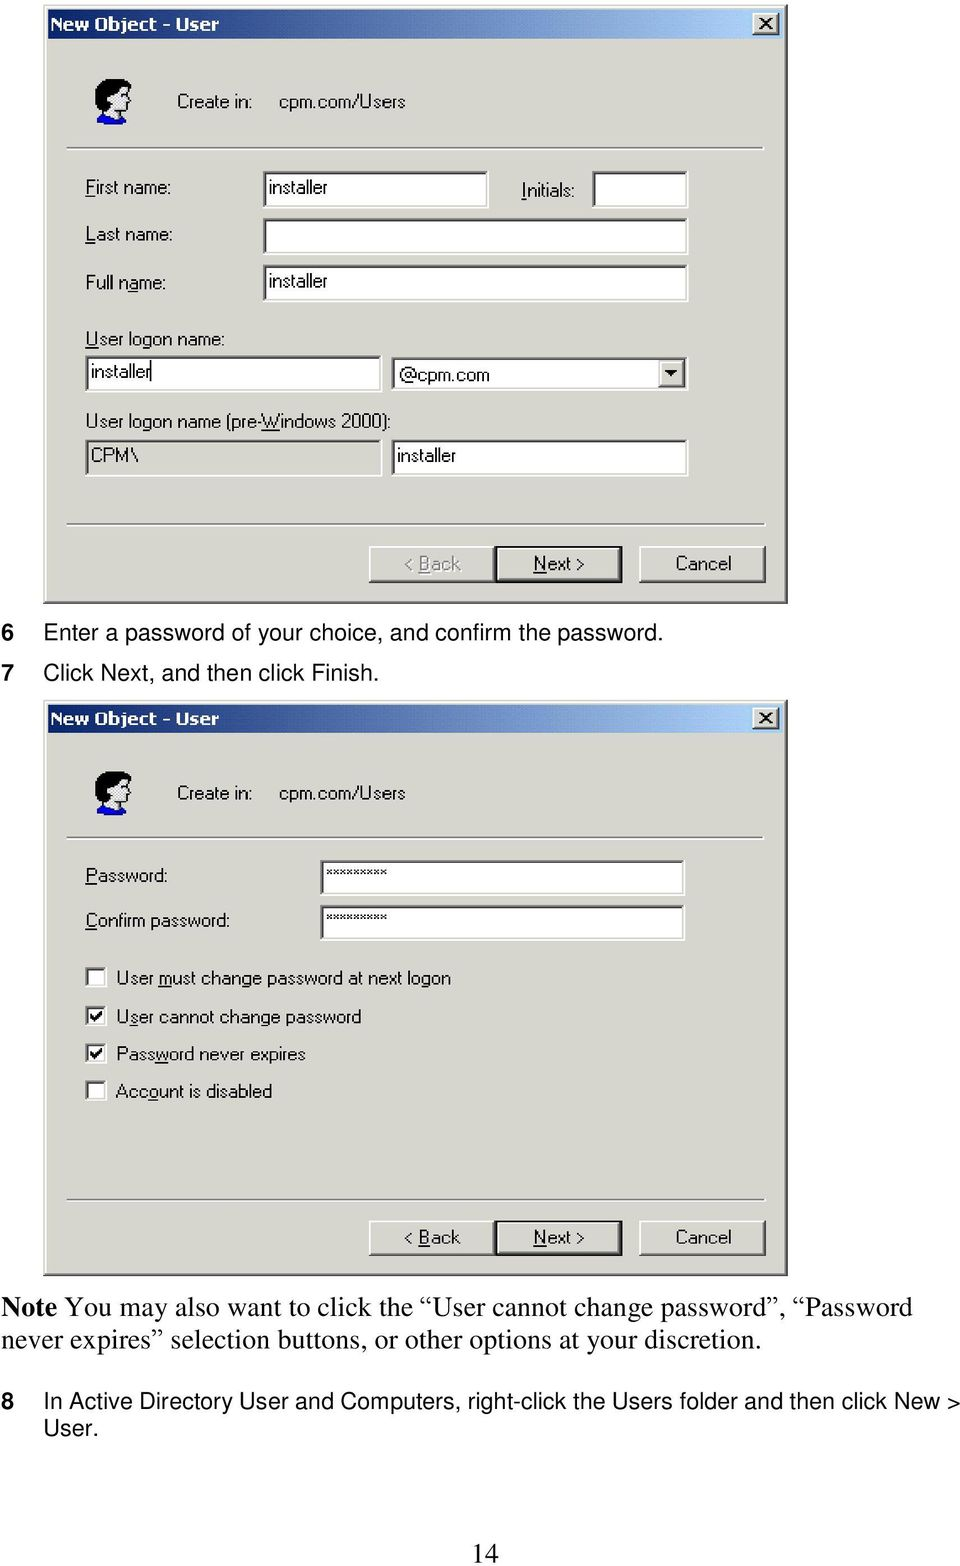 Note You may also want to click the User cannot change password, Password never